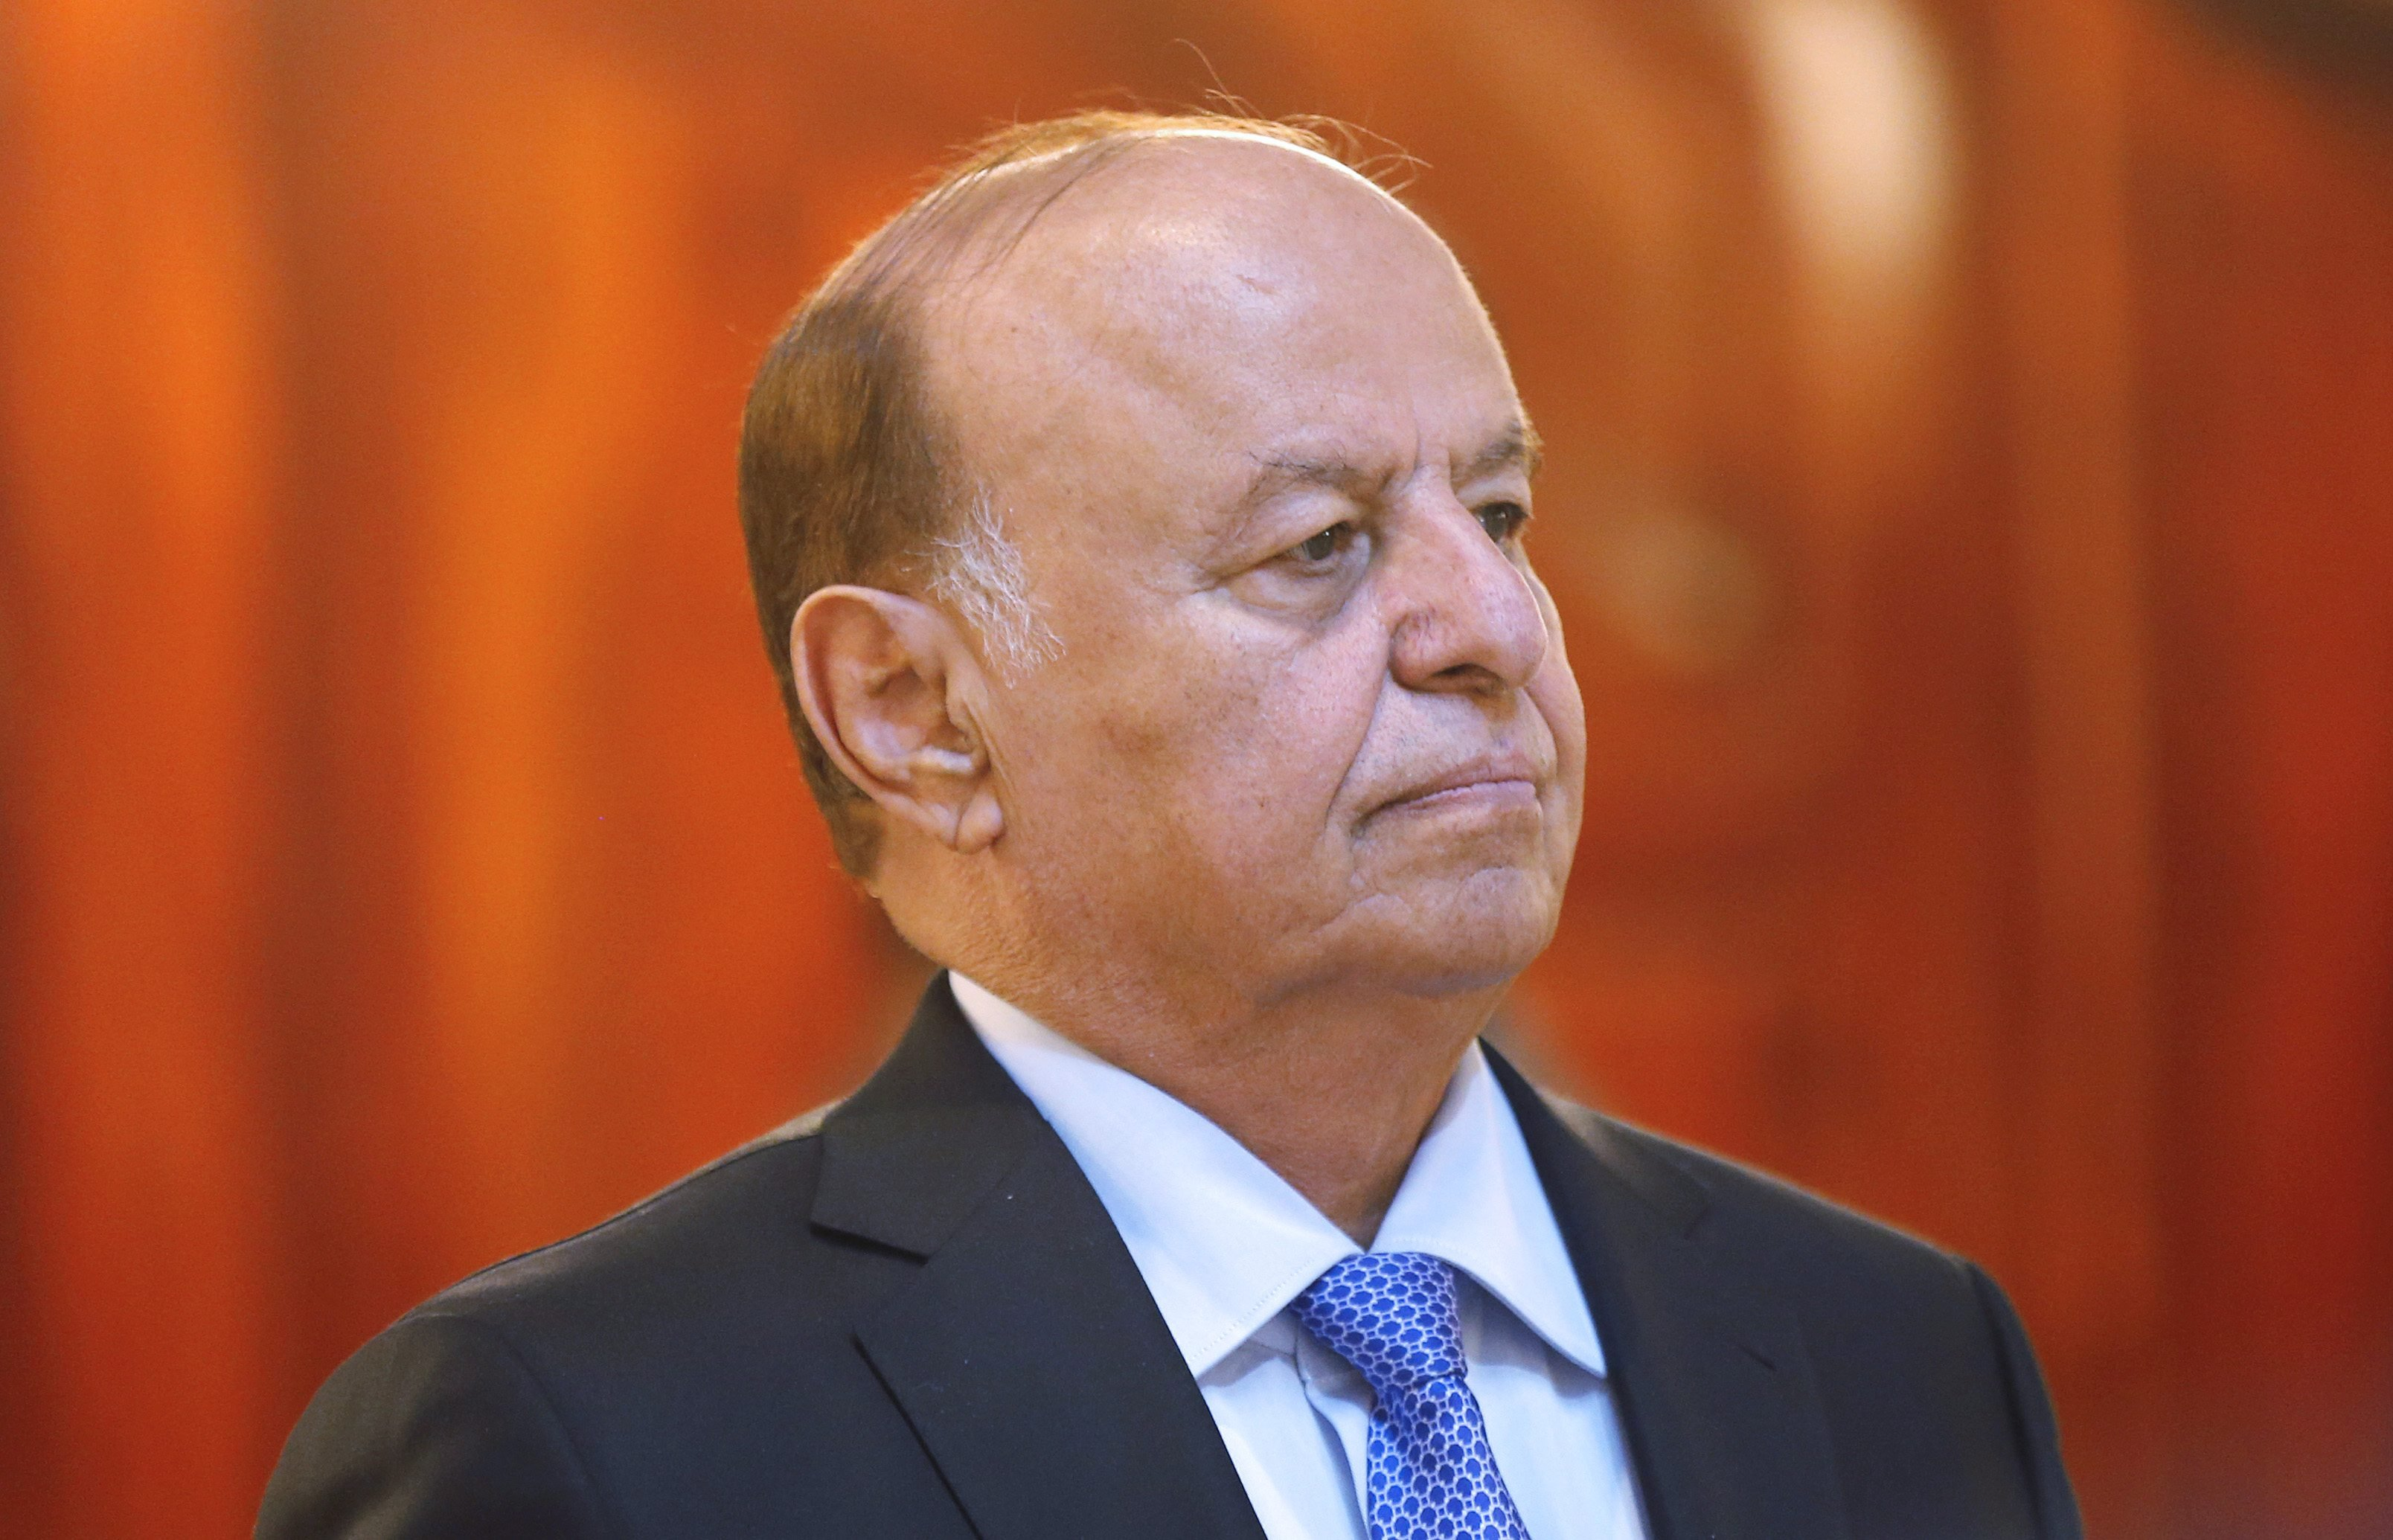 Yemen's President Abdel Rabbo Mansour Hadi stands during a reception ceremony during the holy fasting month of Ramadan at the Republican Palace in the Yemeni capital, Sana'a, on July 7, 2014